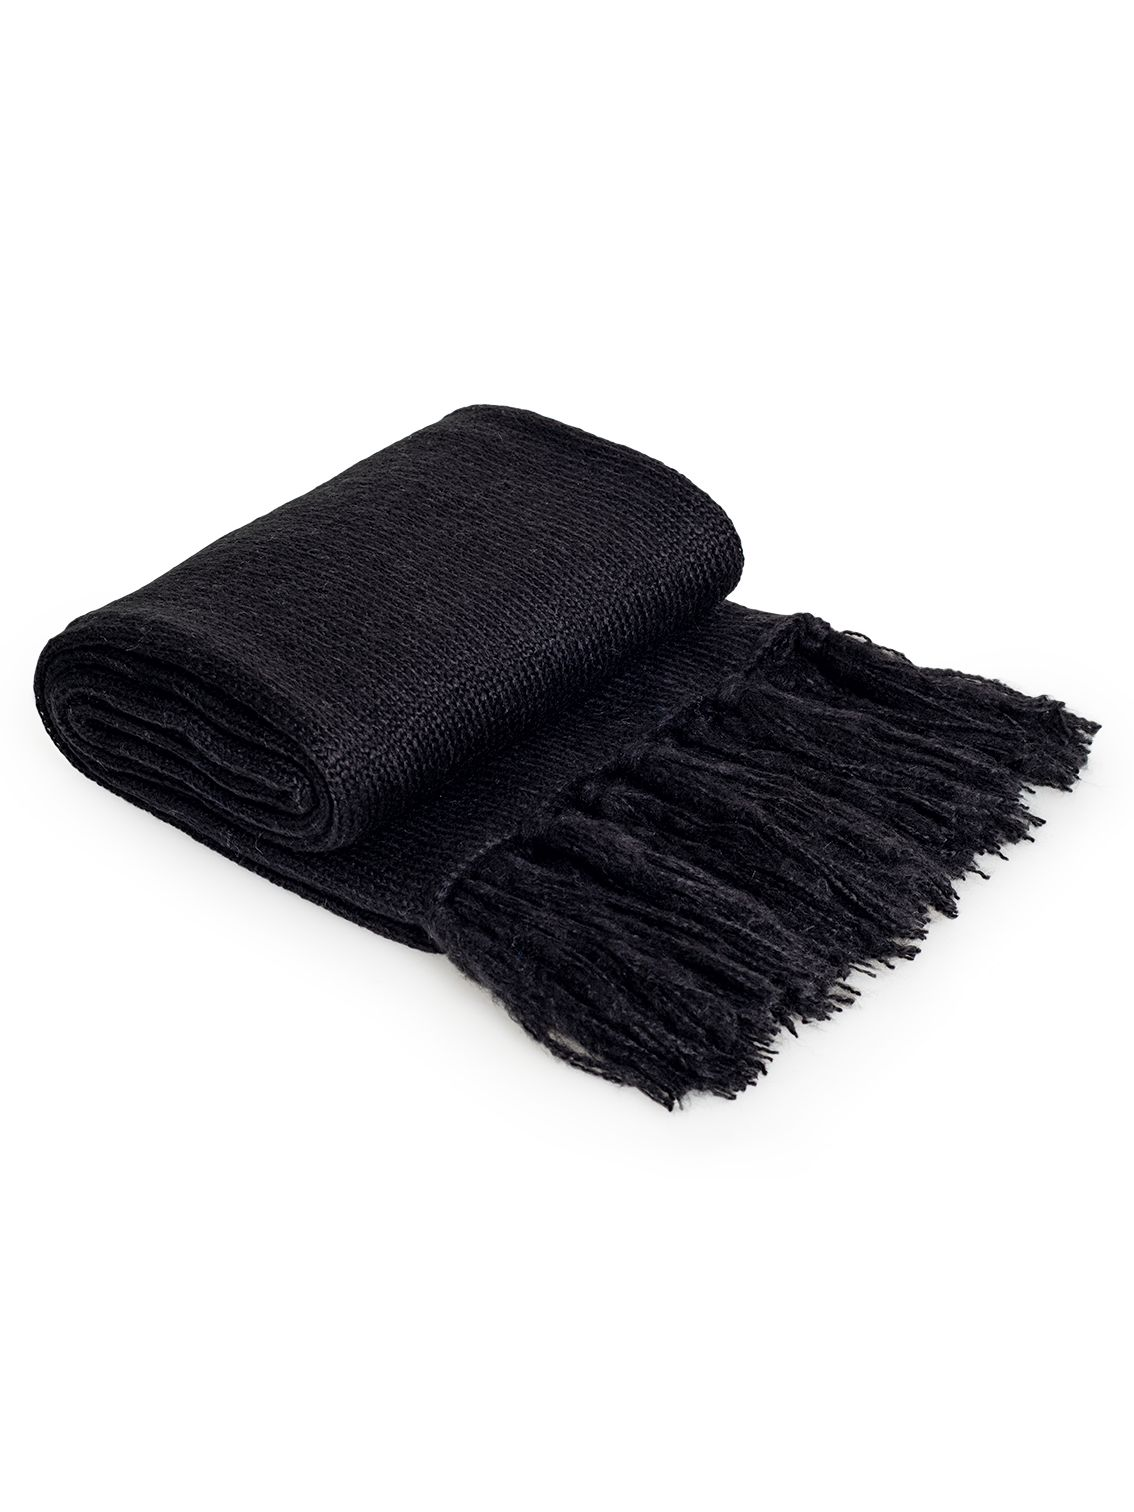 Luxury Throw Rugs Luxury Throw Rug Black